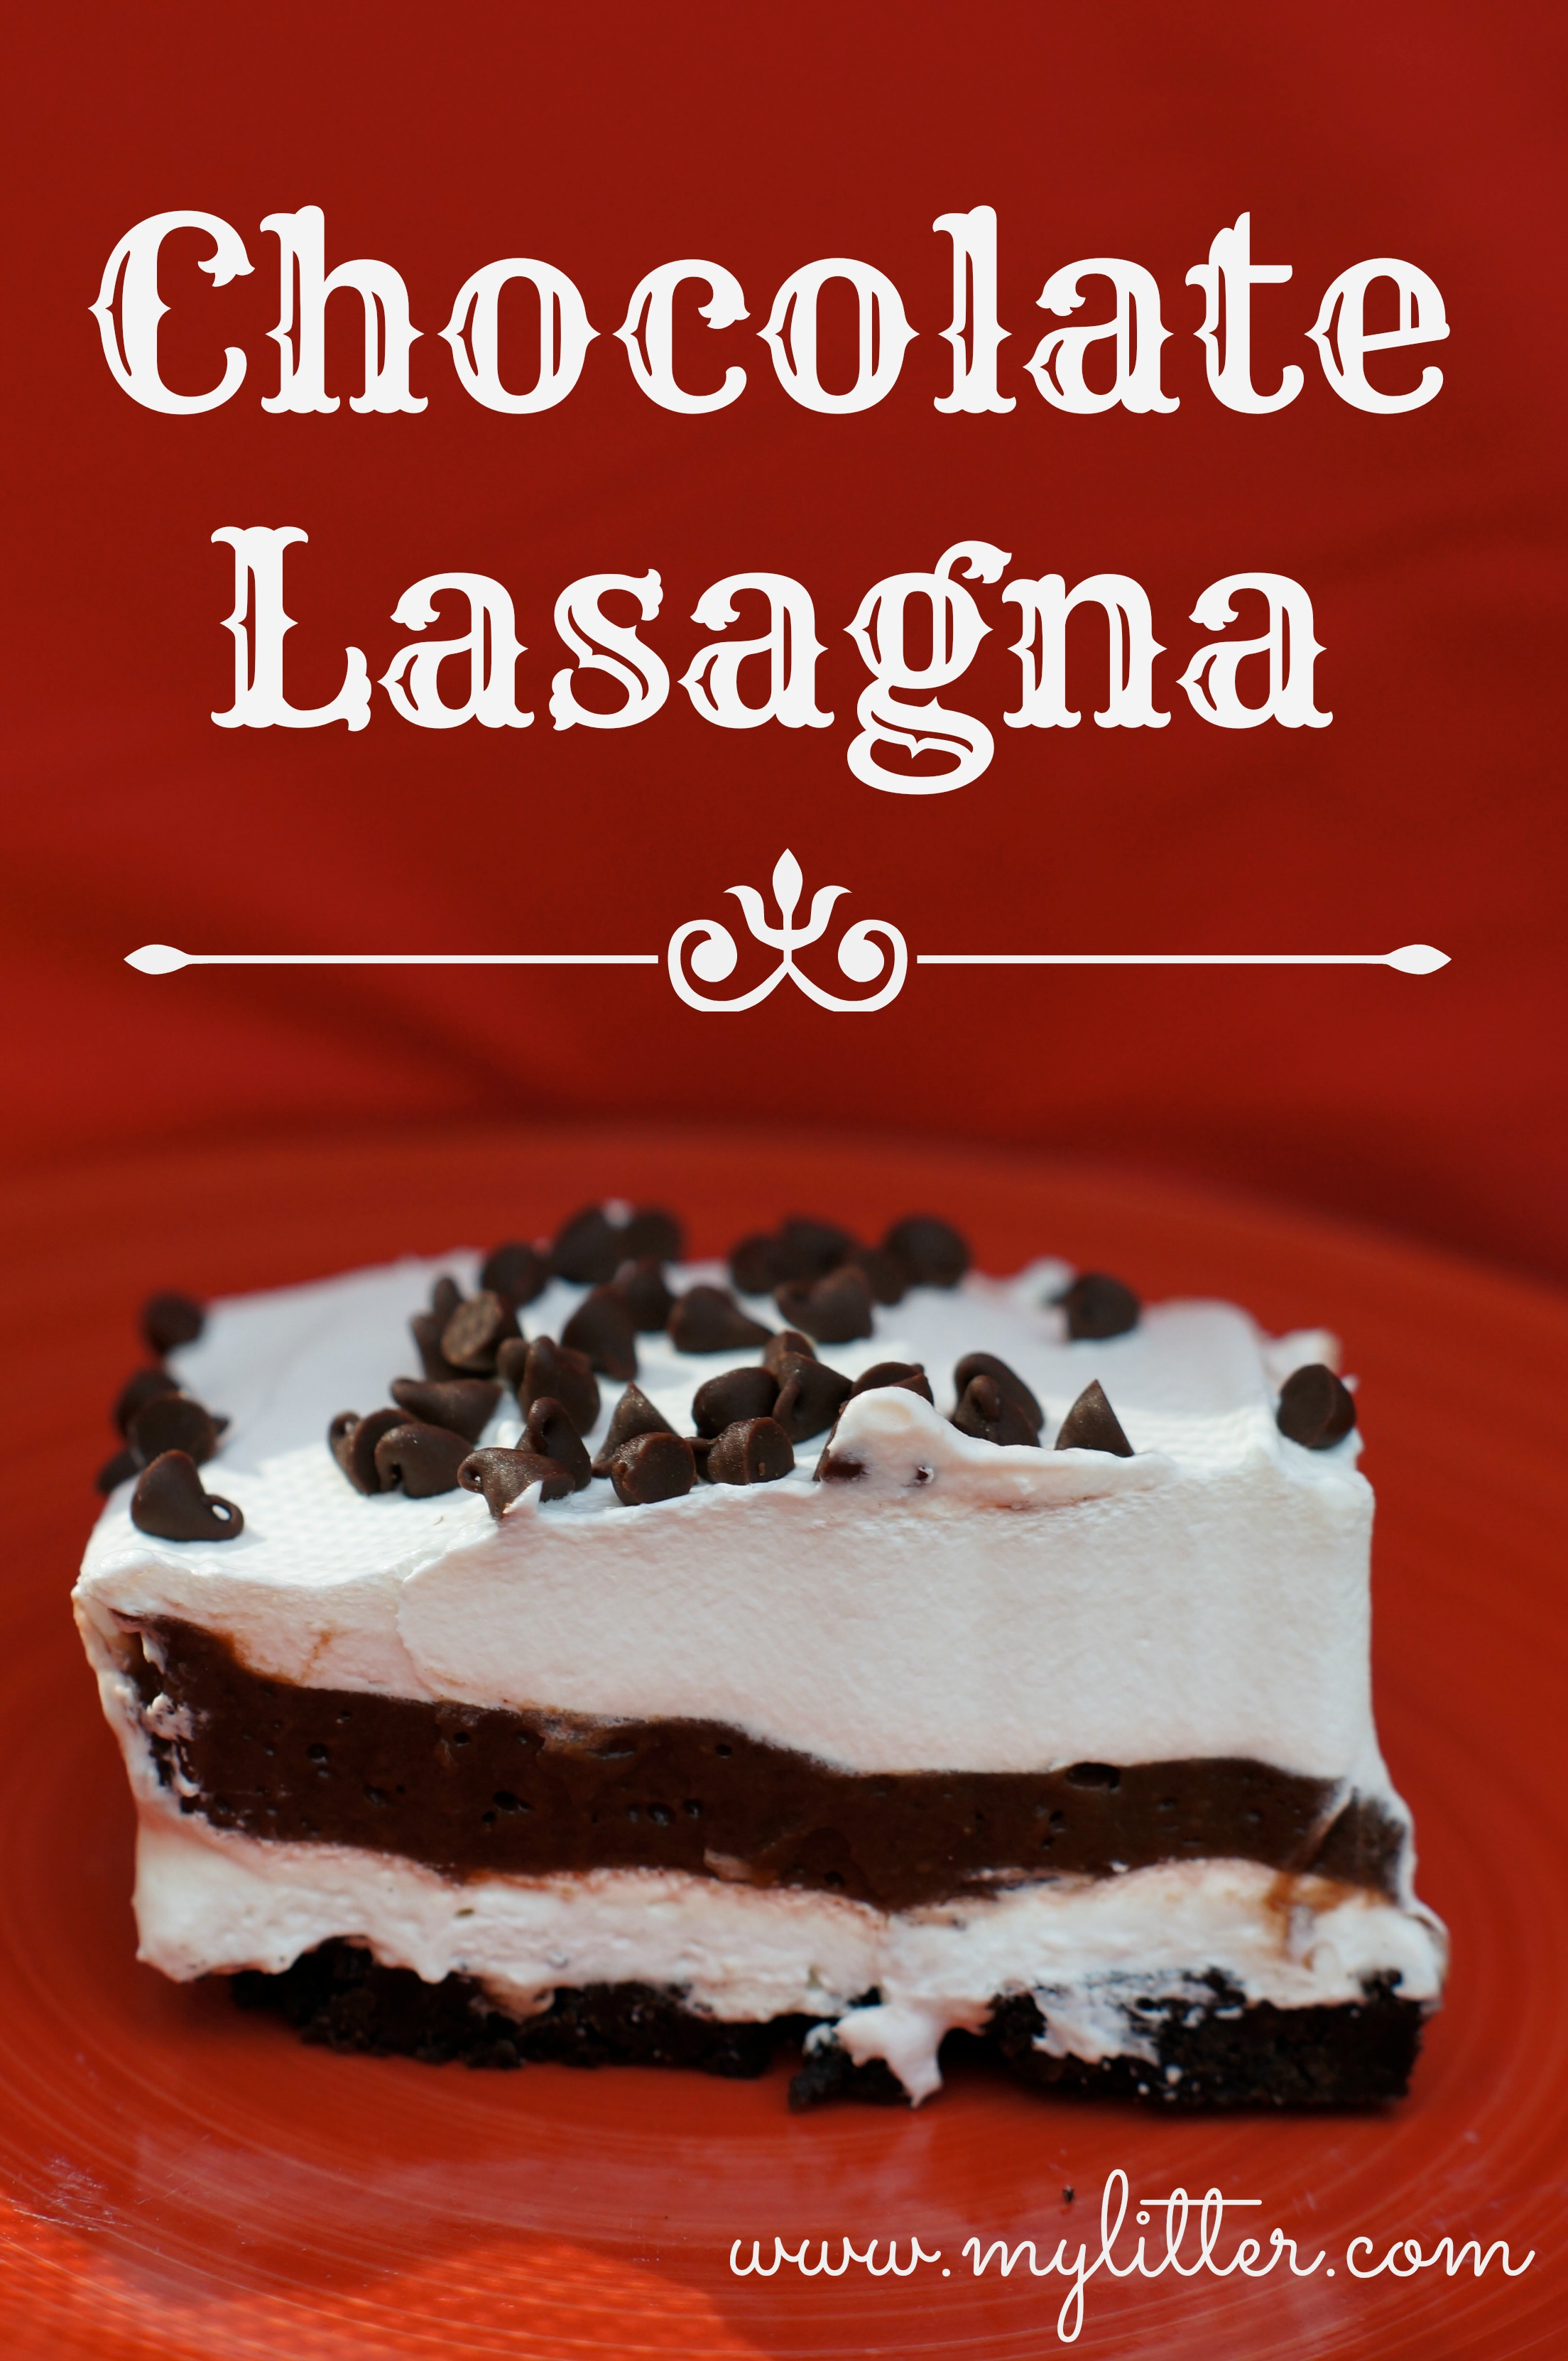 Chocolate Lasagna Dessert recipe